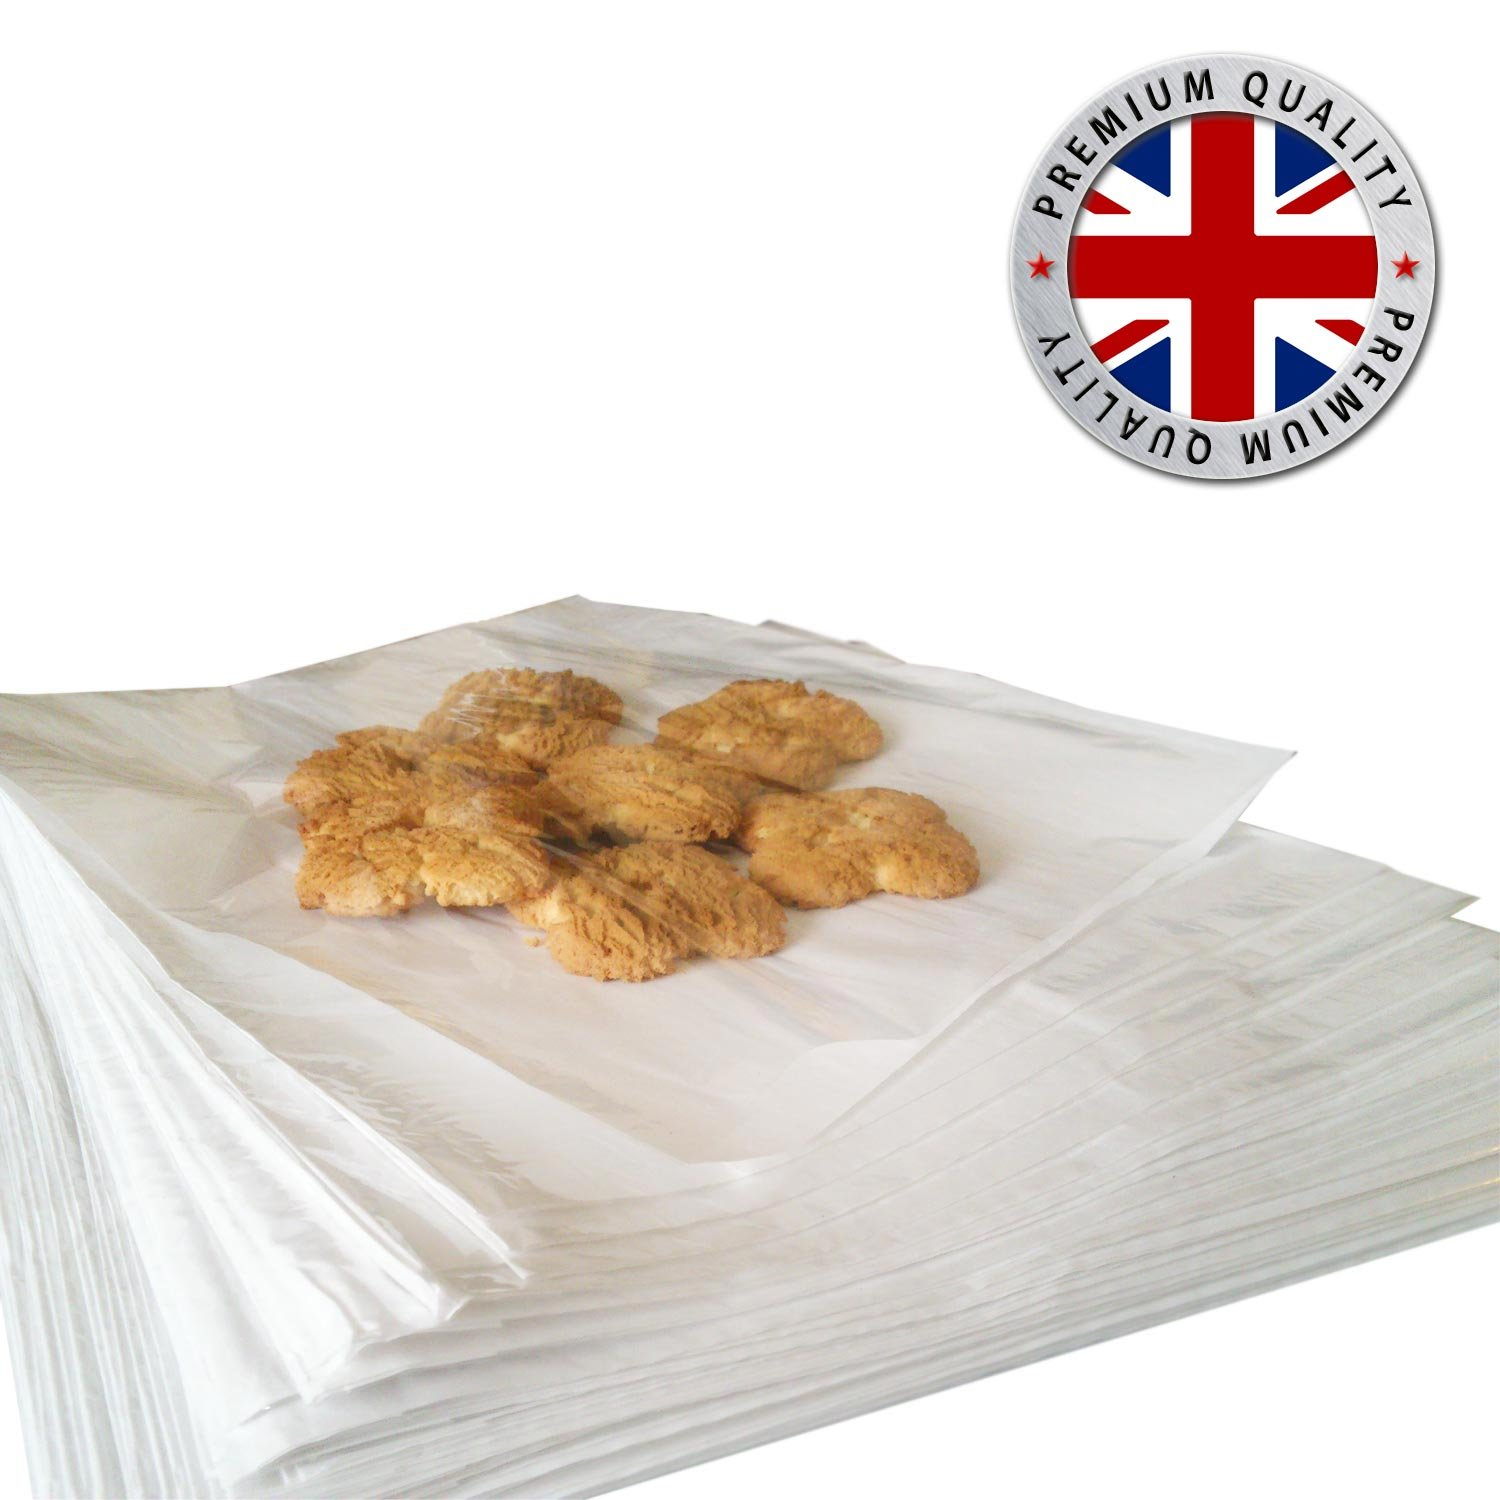 100 Film Fronted/Front Cellophane Window Sandwich Food Paper Bags 7 x 7 (175mm x 175mm) Super Speedy SSP-FPB-7x7